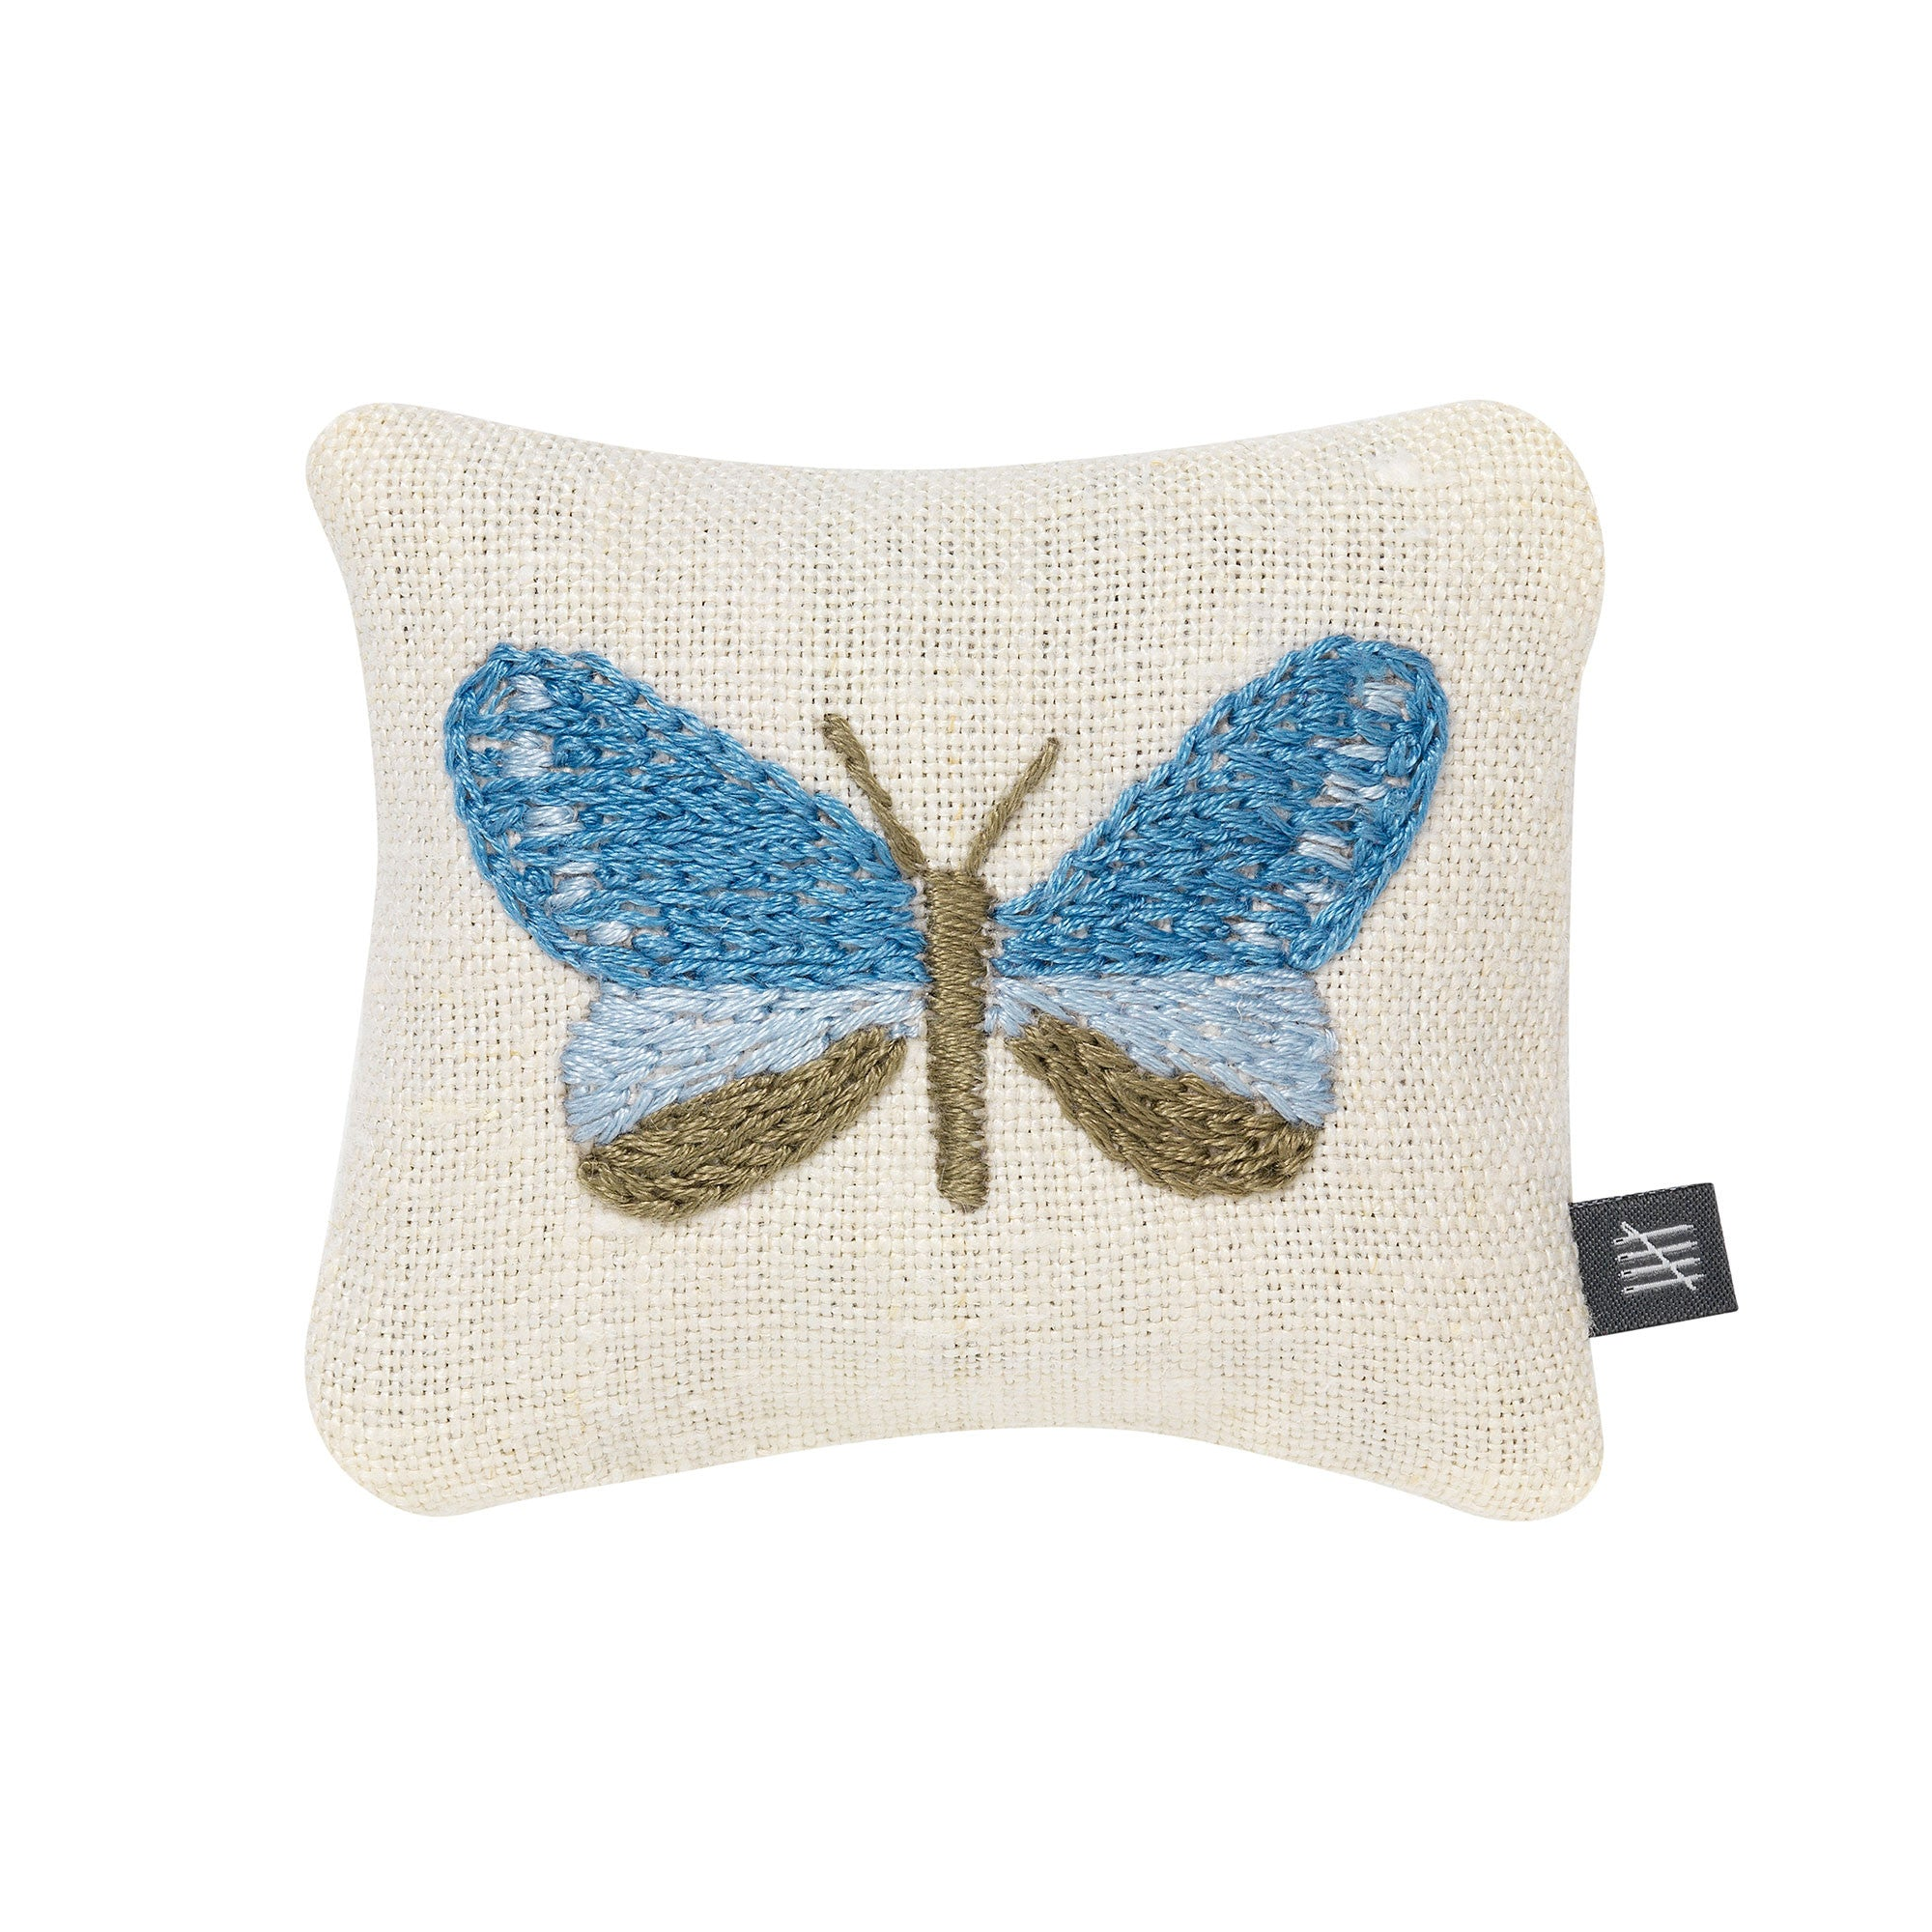 Lavender Bag - Butterflies - Blue on Cream Linen